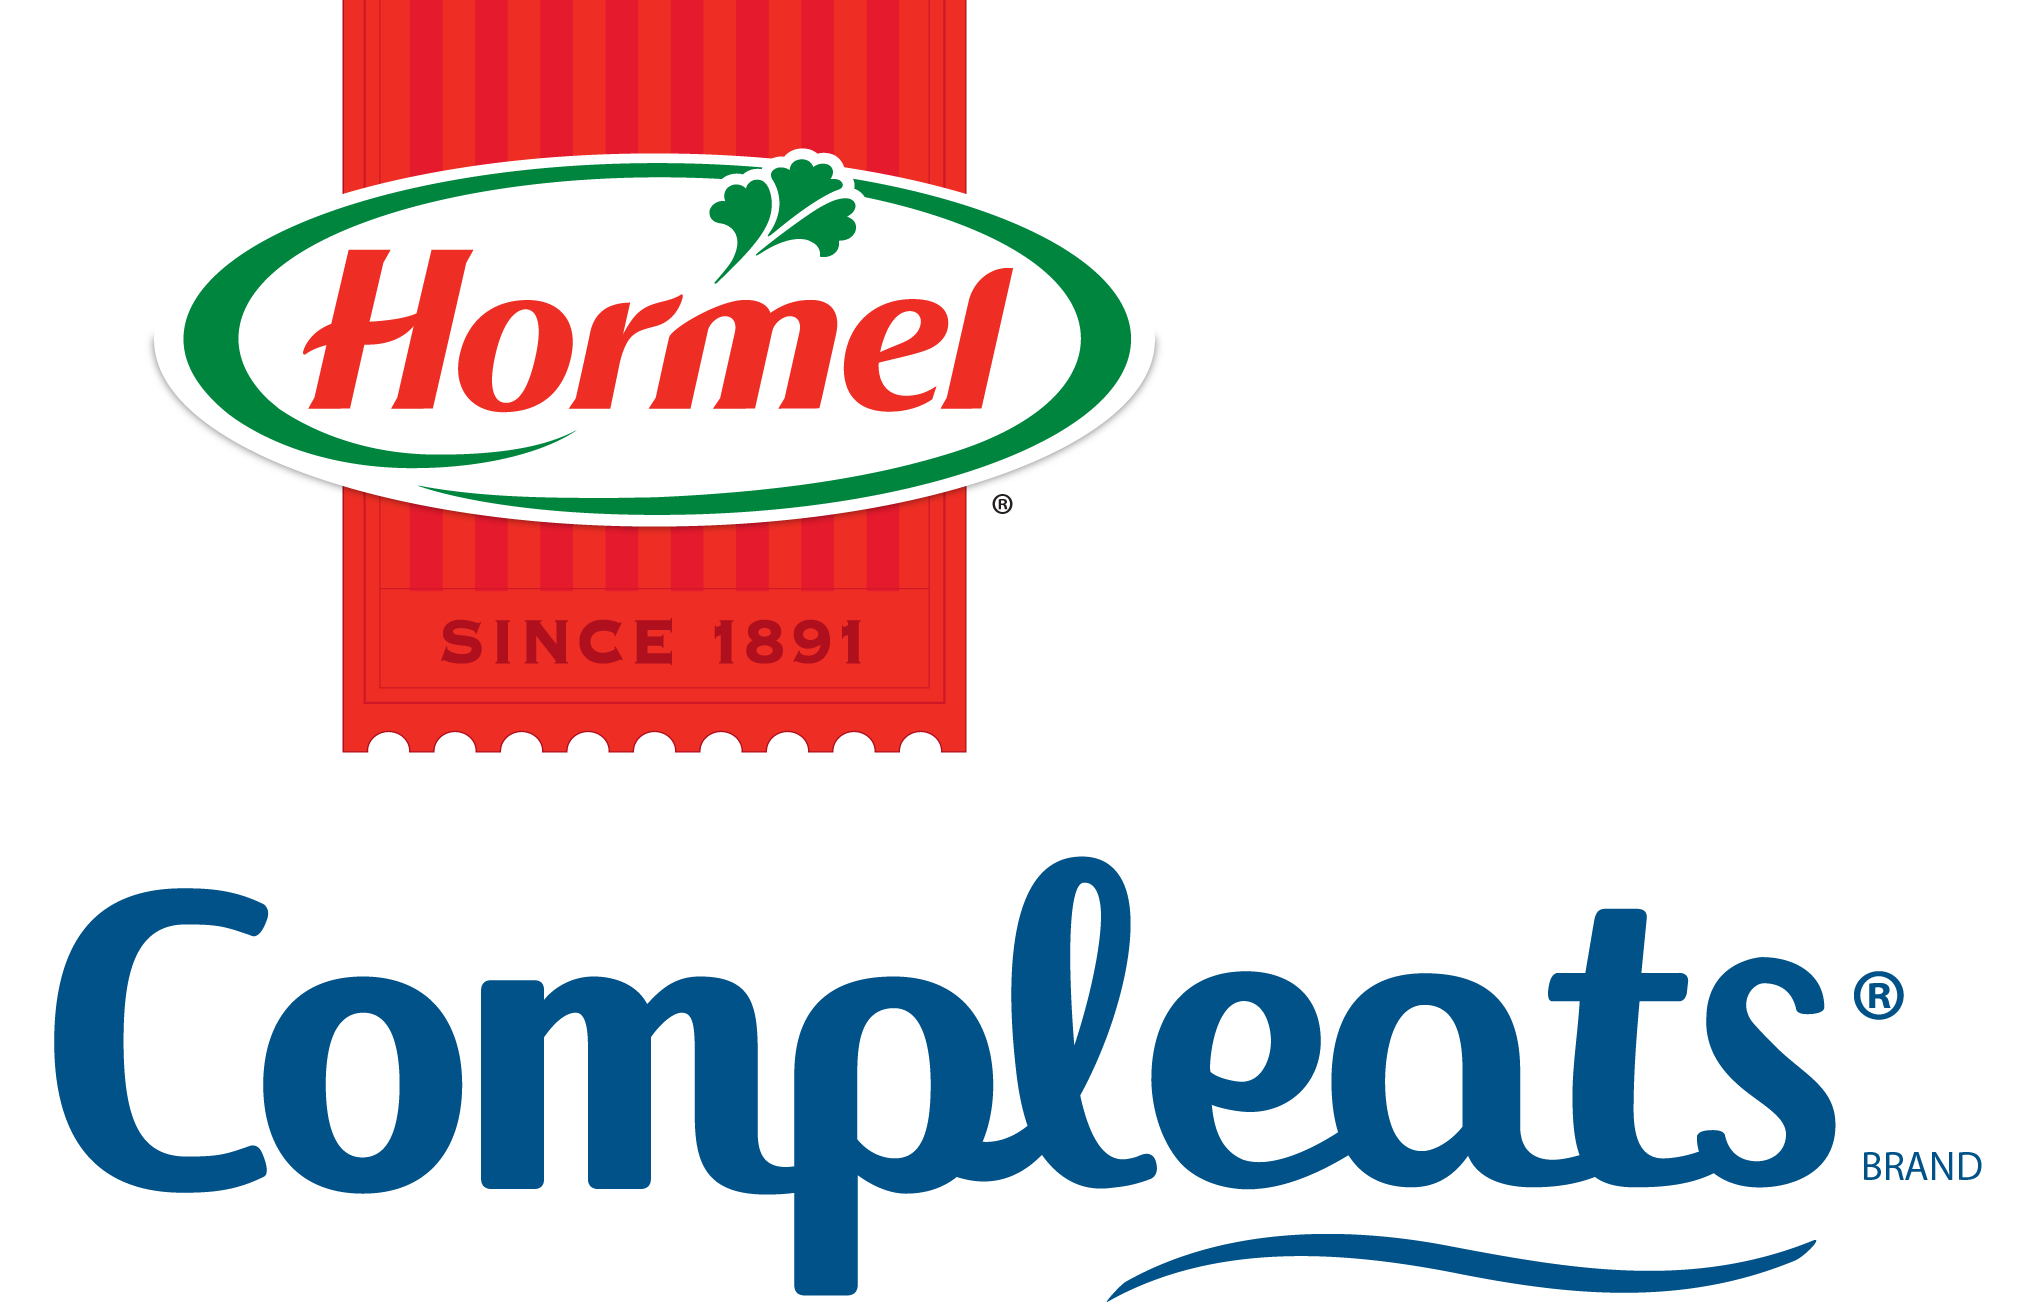 Logo for the Hormel Compleats brand